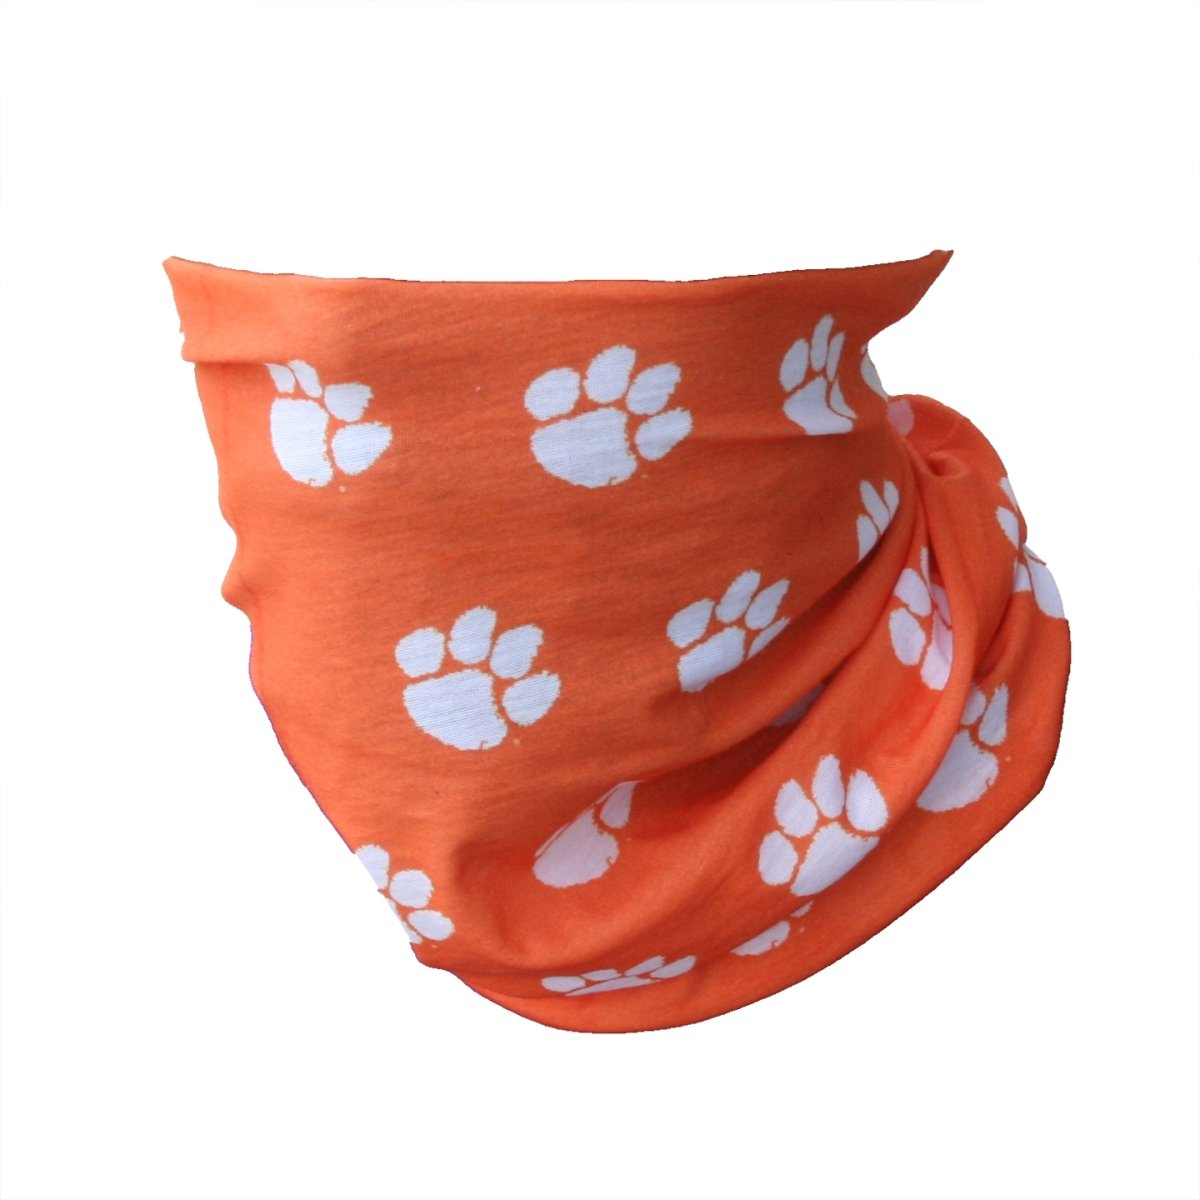 Clemson Repeating Paw Face Shield - Mr. Knickerbocker